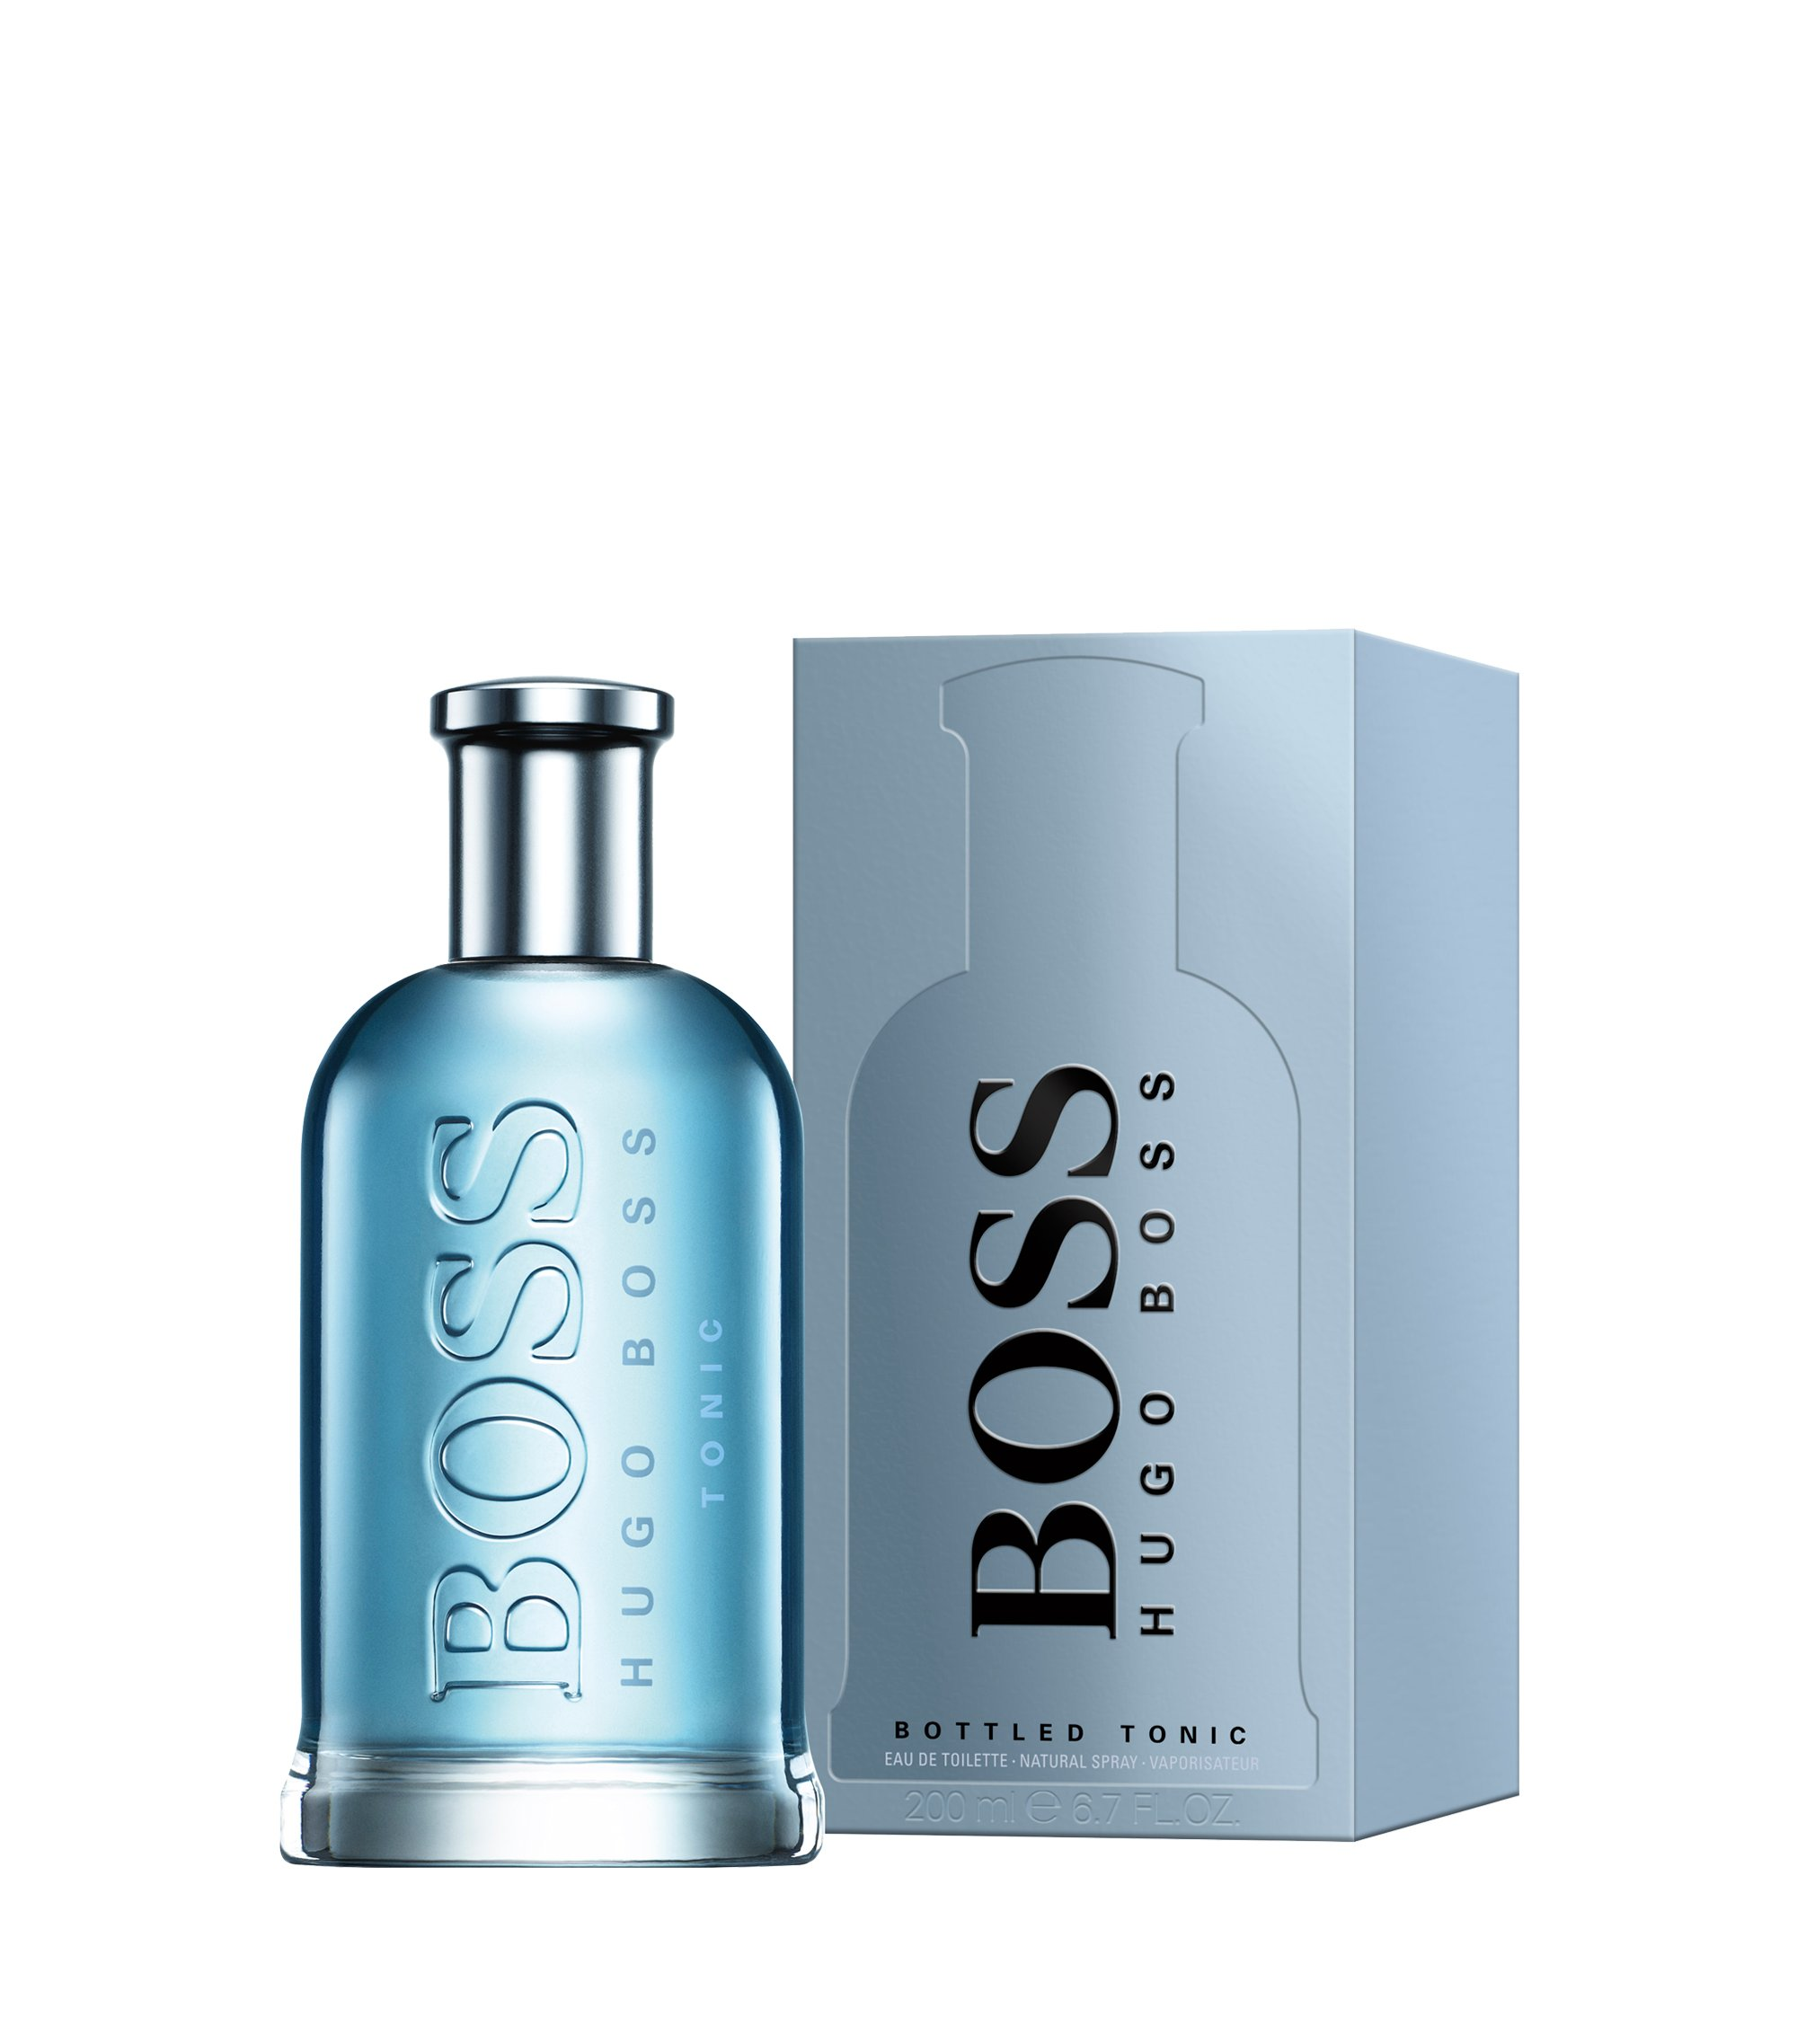 BOSS Bottled Tonic Eau de Toilette 200 ml, Assorted-Pre-Pack